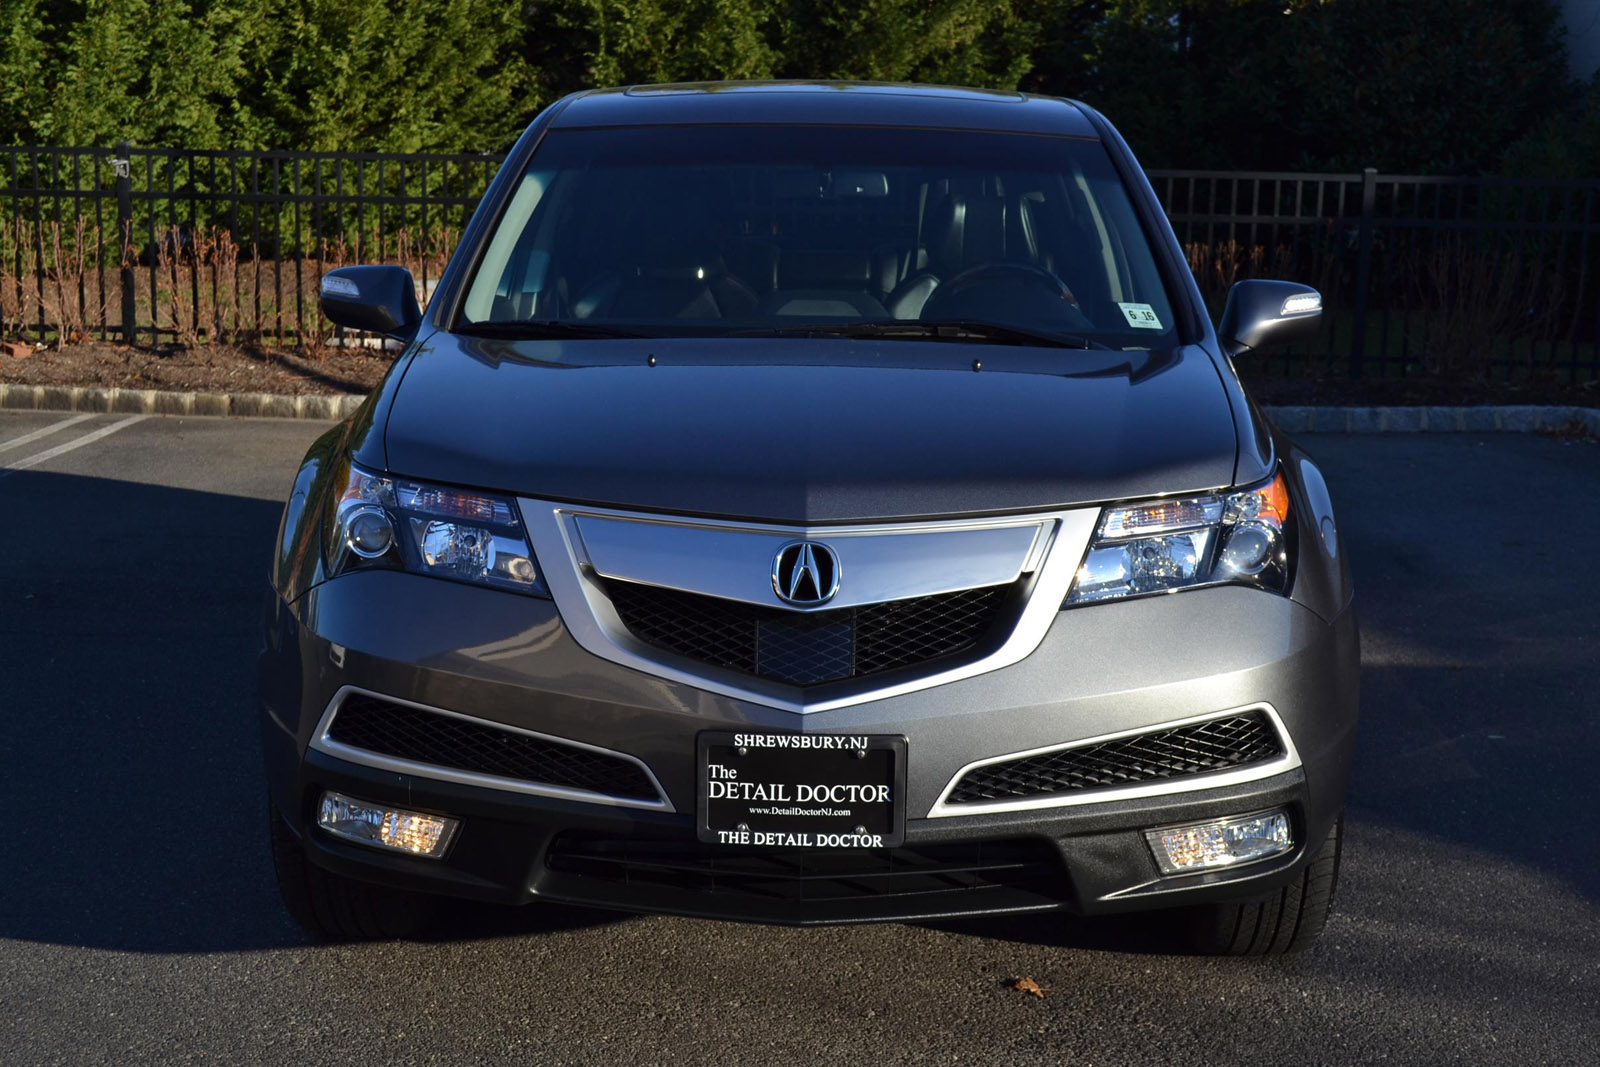 metallic advance gray sale leather color type package mpi nj black body make buy metal exterior engine used model trim car polished acura for sohc pre suv interior owned mdx